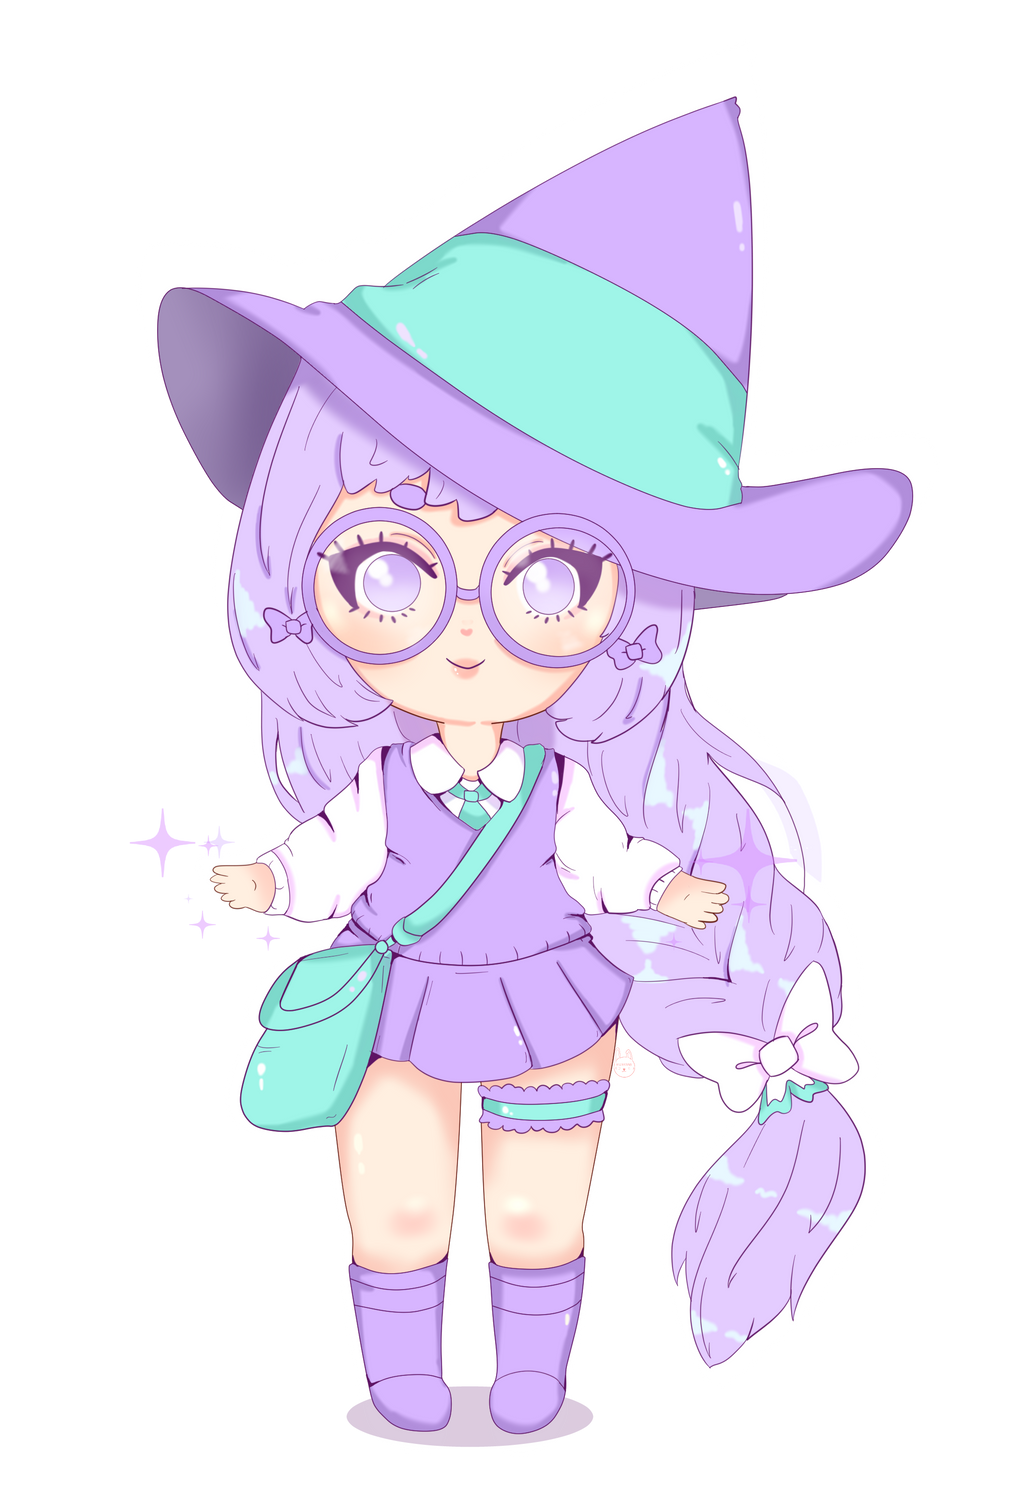 witchy_by_fluffans-dcj6z6t.png